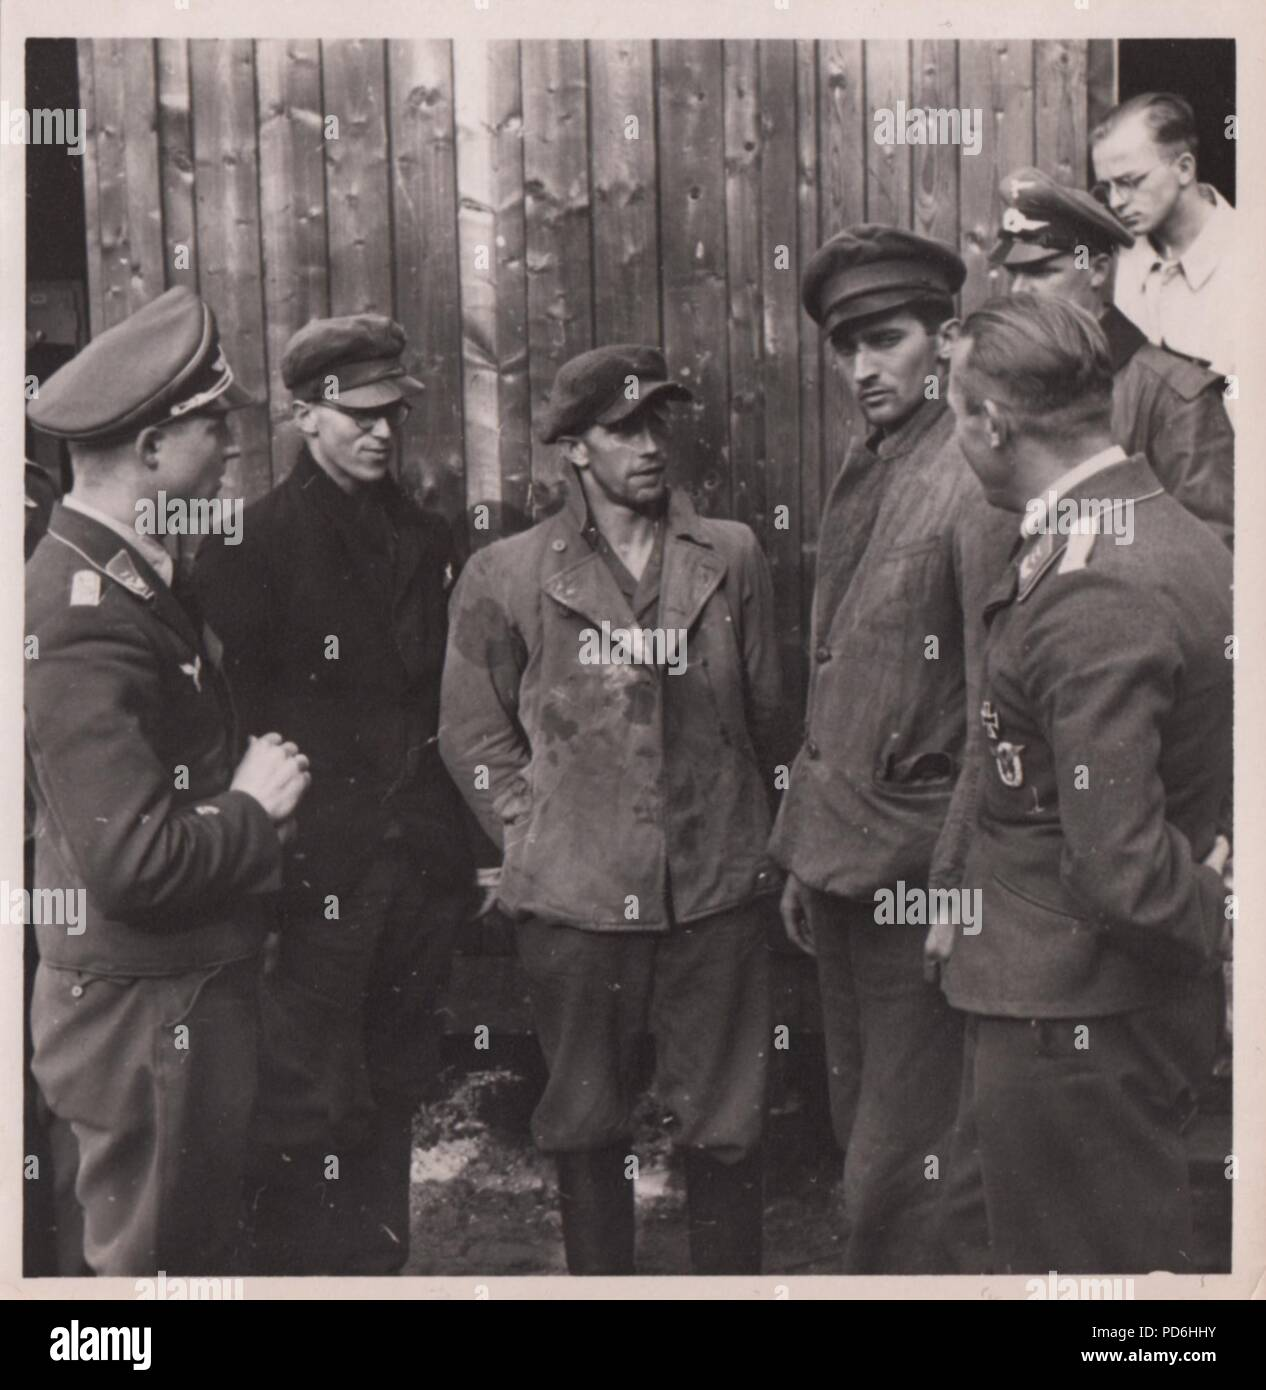 Image from the photo album of Oberleutnant Oscar Müller of  Kampfgeschwader 1: On 27th June 1941 Junkers Ju 88A-5 V4+ON (Werk. Nr. 4296) of 5./KG 1, was reported lost during a mission to Riga. Unteroffizier Friedrich Leibold (Air Gunner) was killed in action but the rest of the crew, Pilot Oberfeldwebel August Wiese (centre), Observer Feldwebel Martin Hasten (right) and Radio Operator Unteroffizier Armin Wuigk (with spectacles), returned in eight days. Here the crew are still disguised in civilian clothes and talking to Luftwaffe officers. - Stock Image